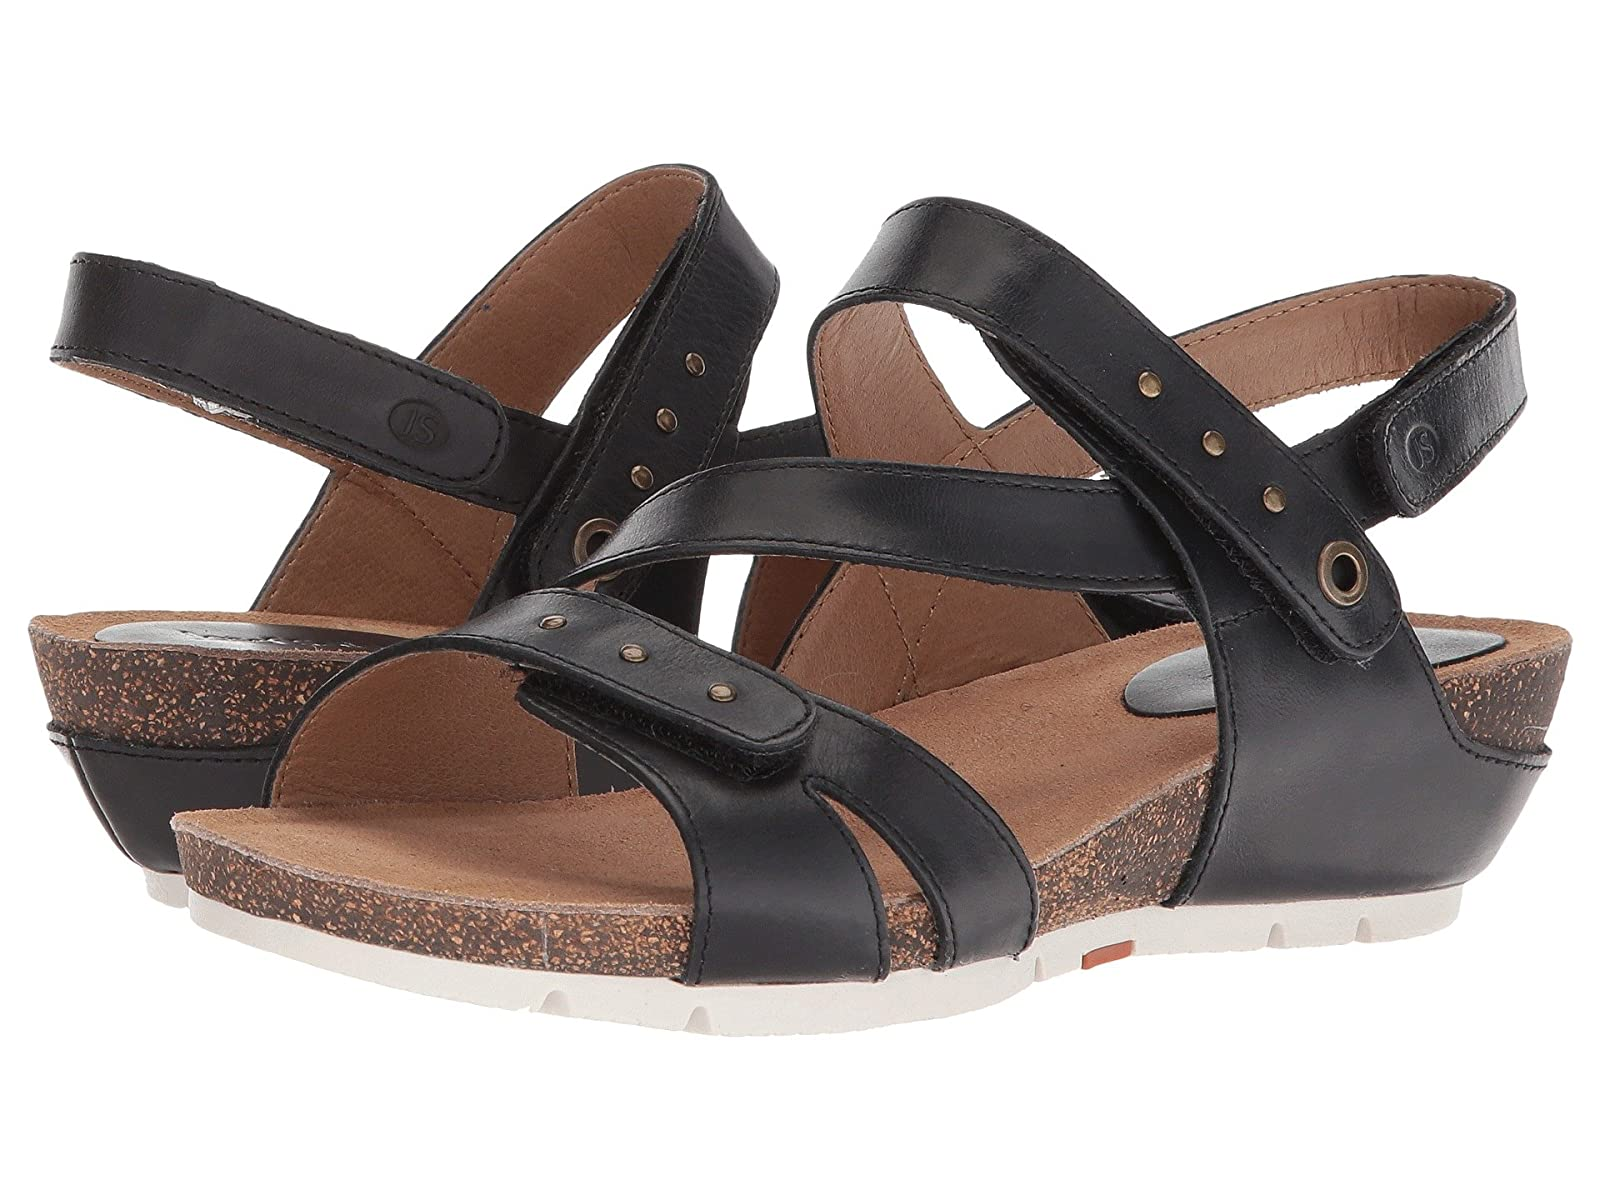 Josef Seibel Hailey 33Cheap and distinctive eye-catching shoes